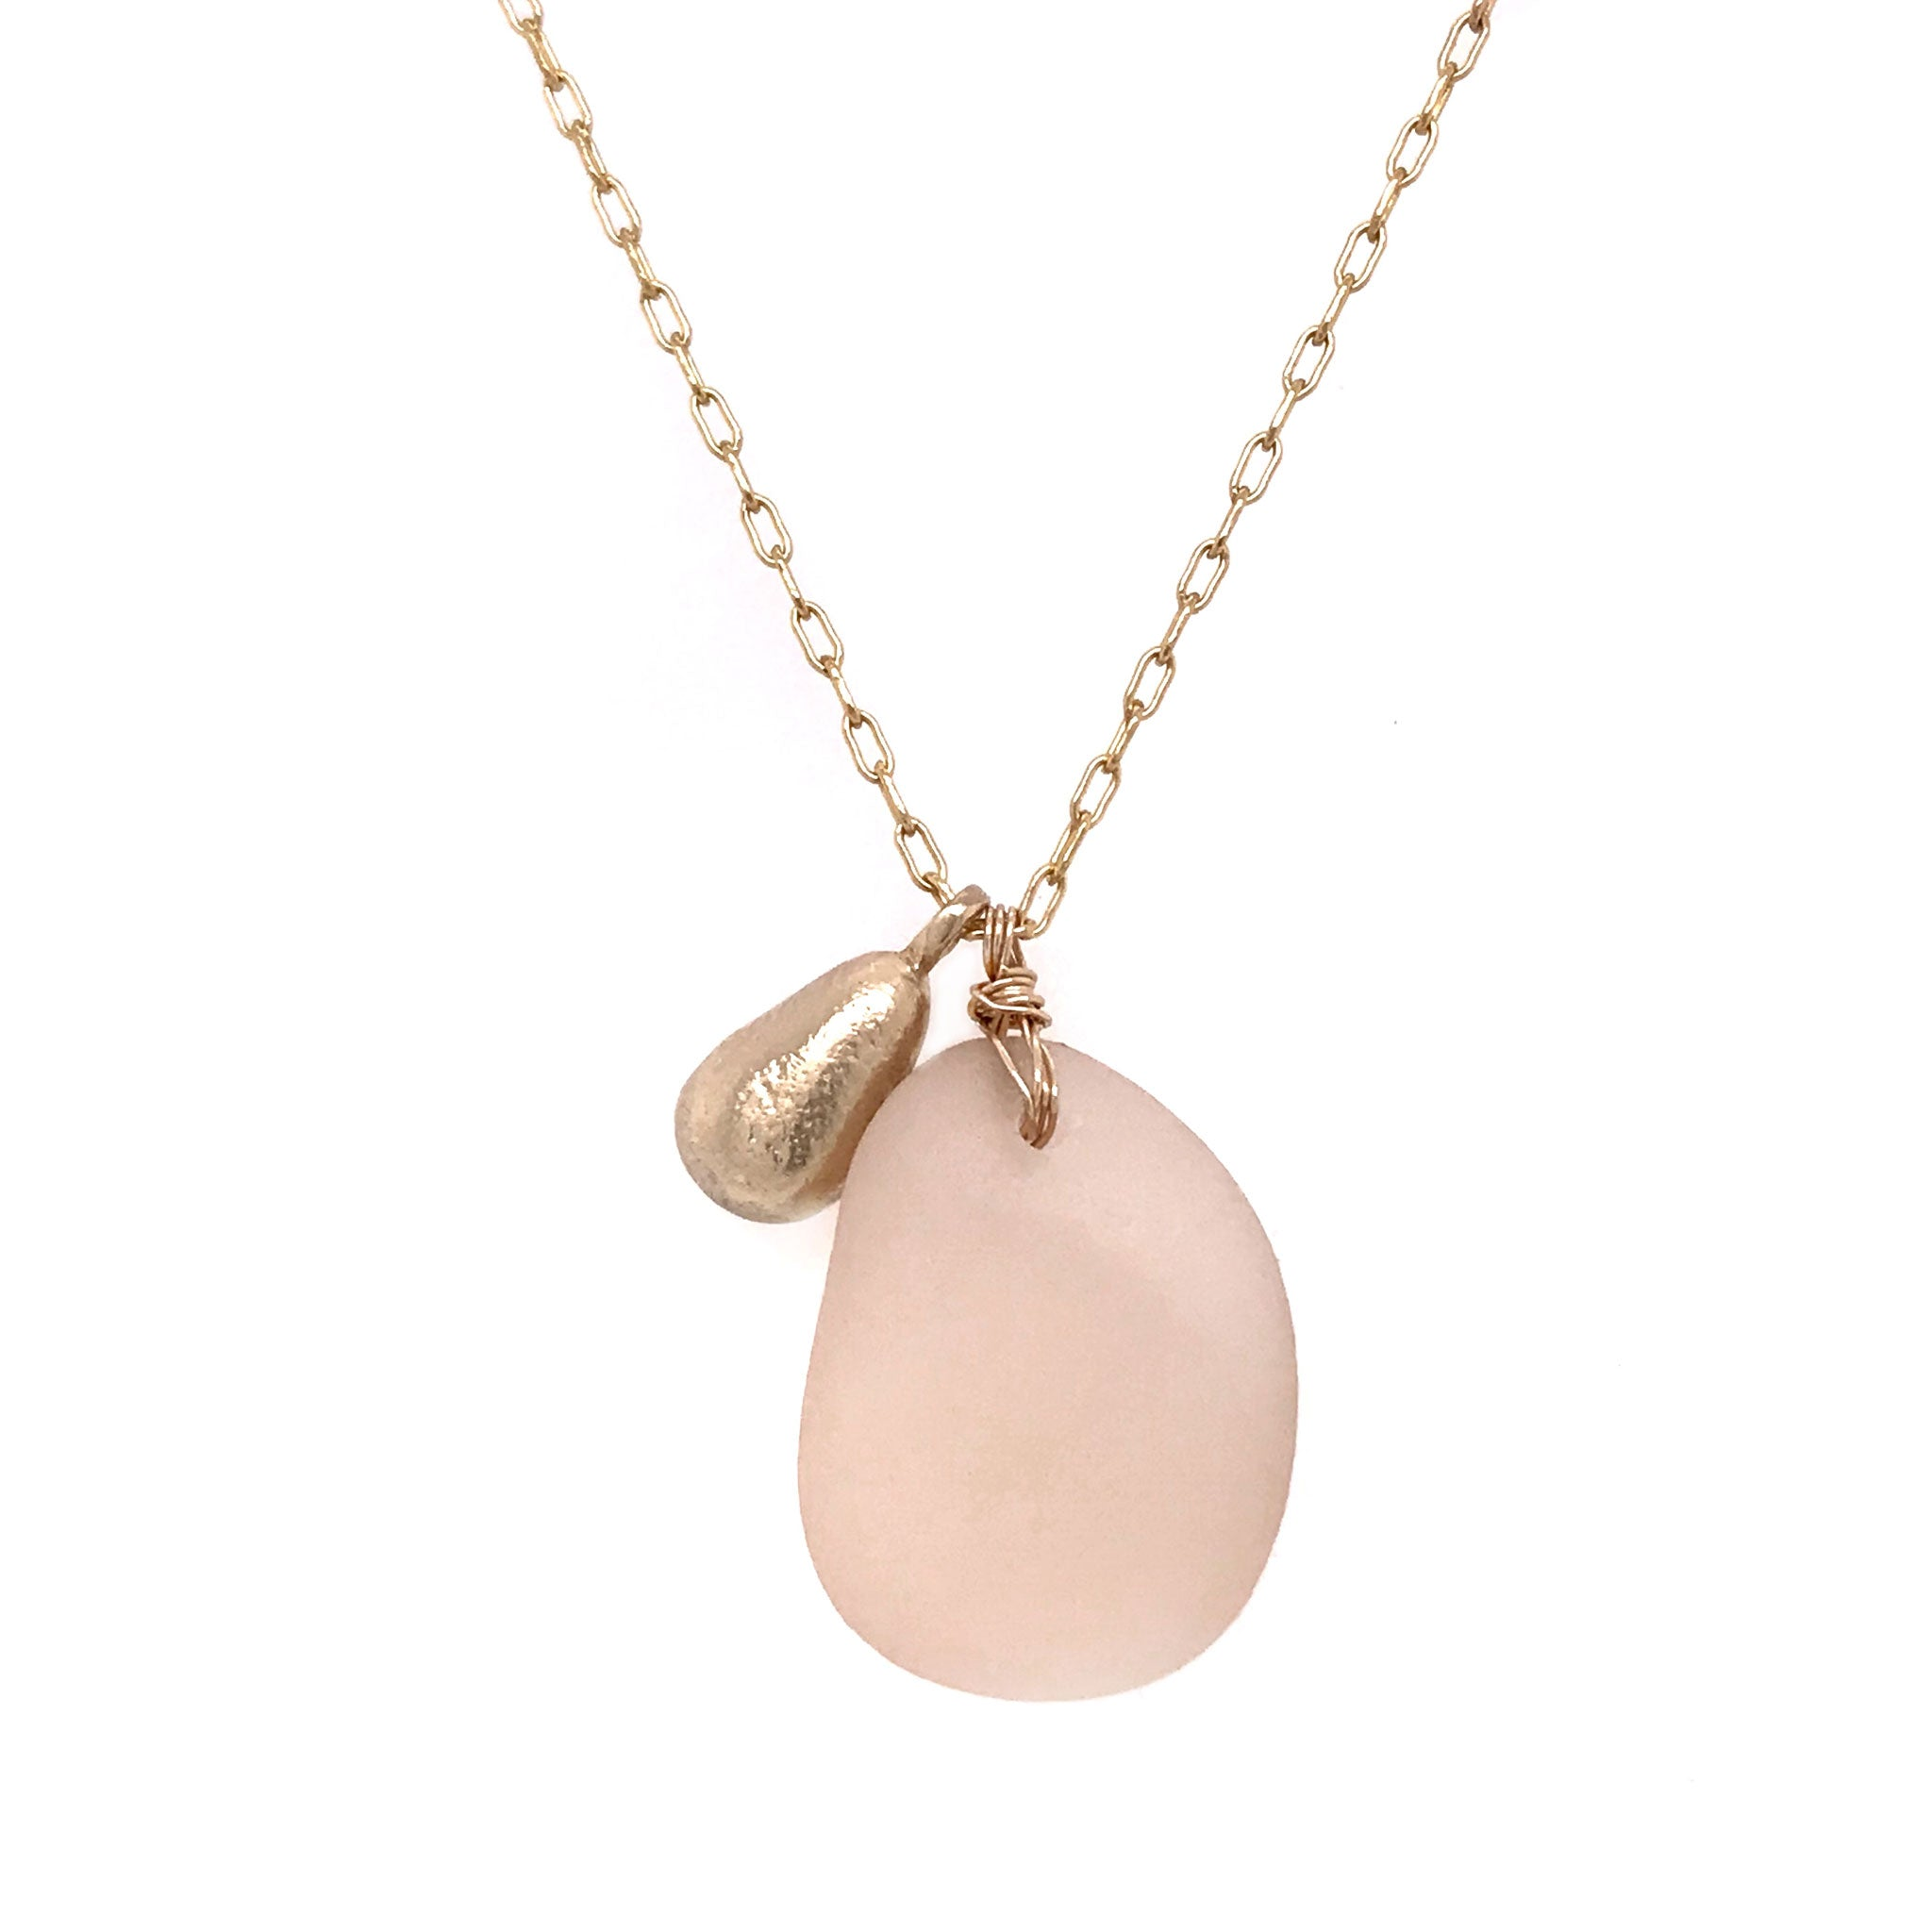 champagne pink necklace kriket broadhurst seaglass necklace